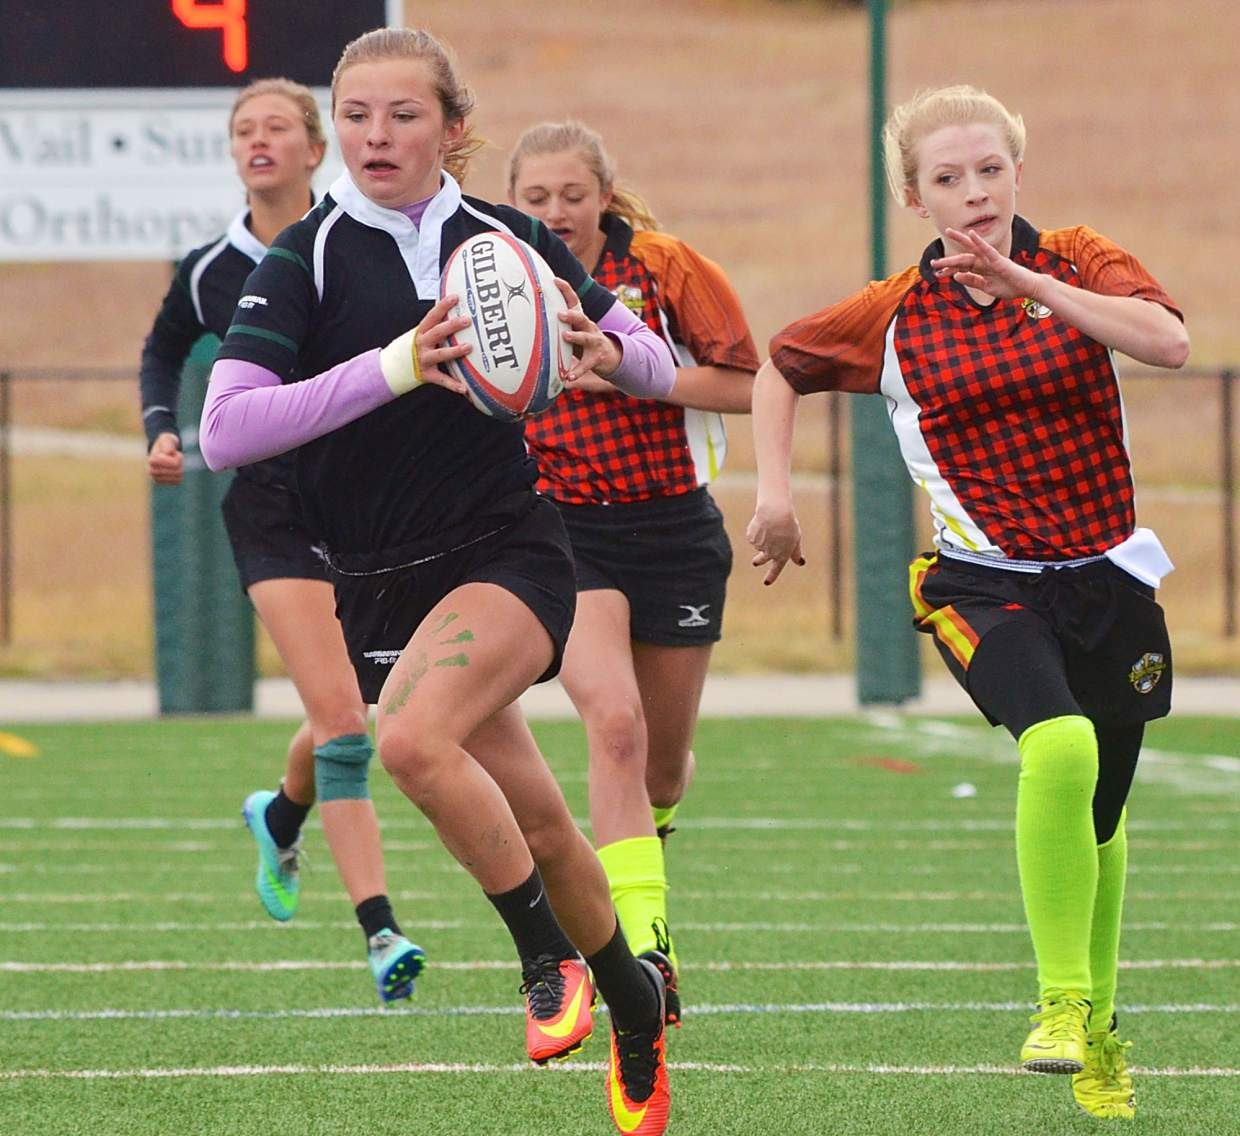 A Summit Black player streaks downfield with Lumberjackies players in hot pursuit during a round of pool play at the Tigers homecoming sevens rugby tournament on Sept. 24. The Summit Black team beat Chaparral, 33-7, in the final to win the tourney.